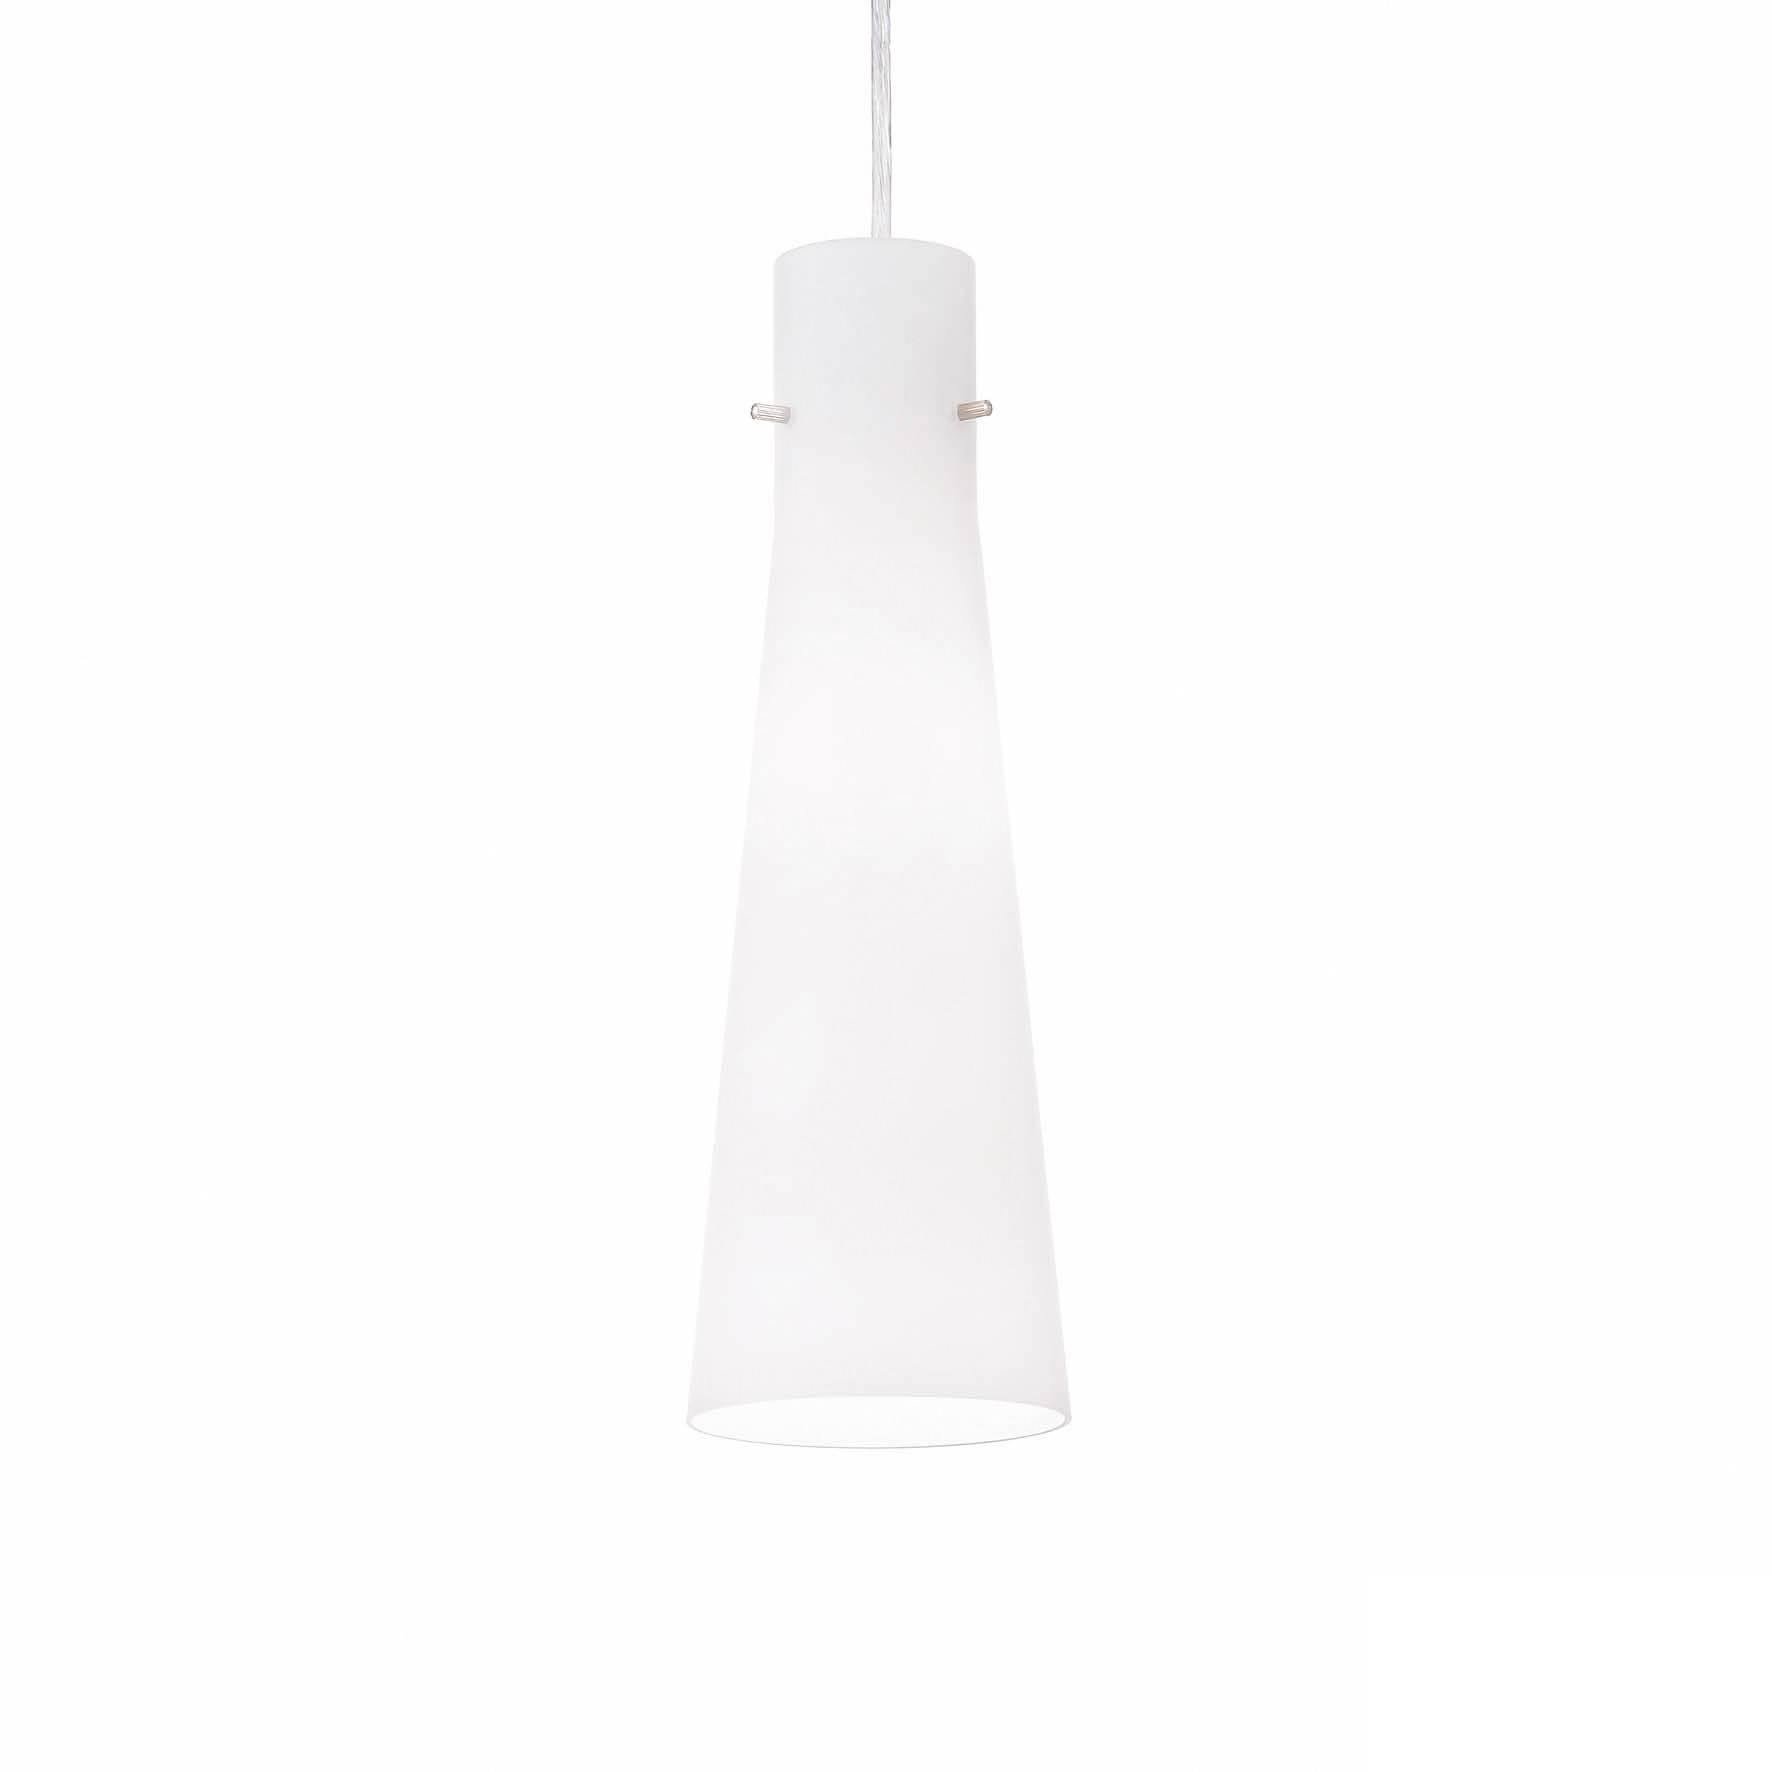 Светильник Ideal lux KUKY BIANCO SP1 053448 Kuky